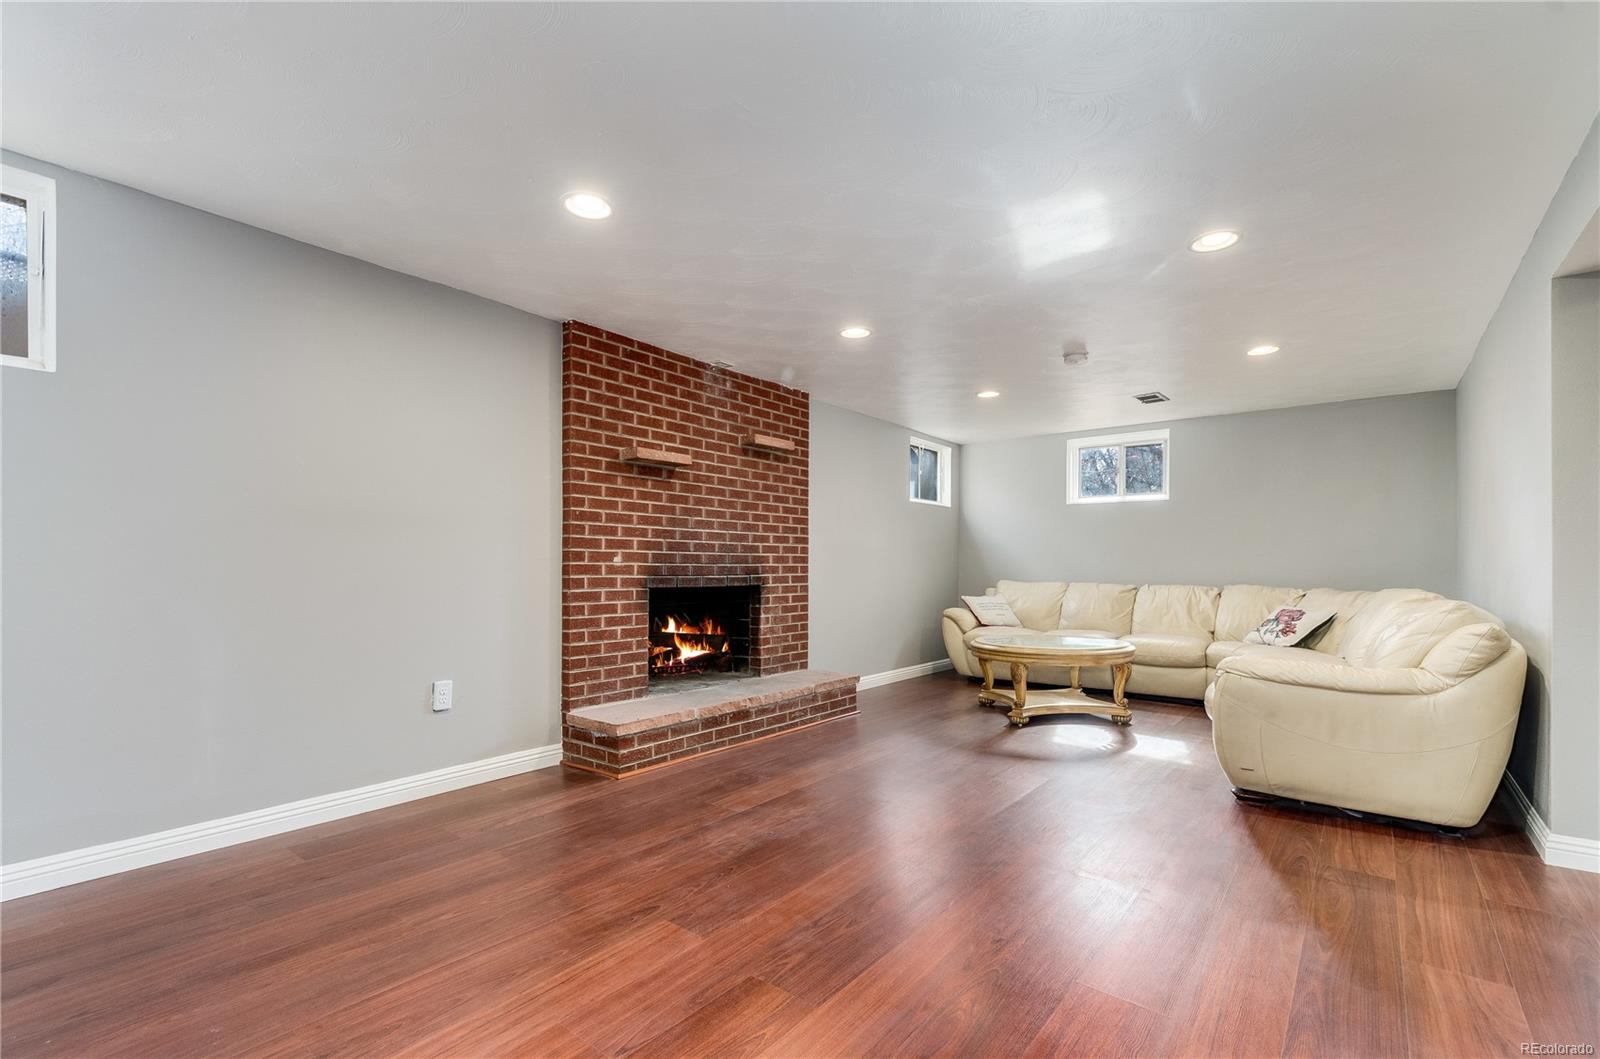 Finished Basement Rec. Room with Hearth Fireplace